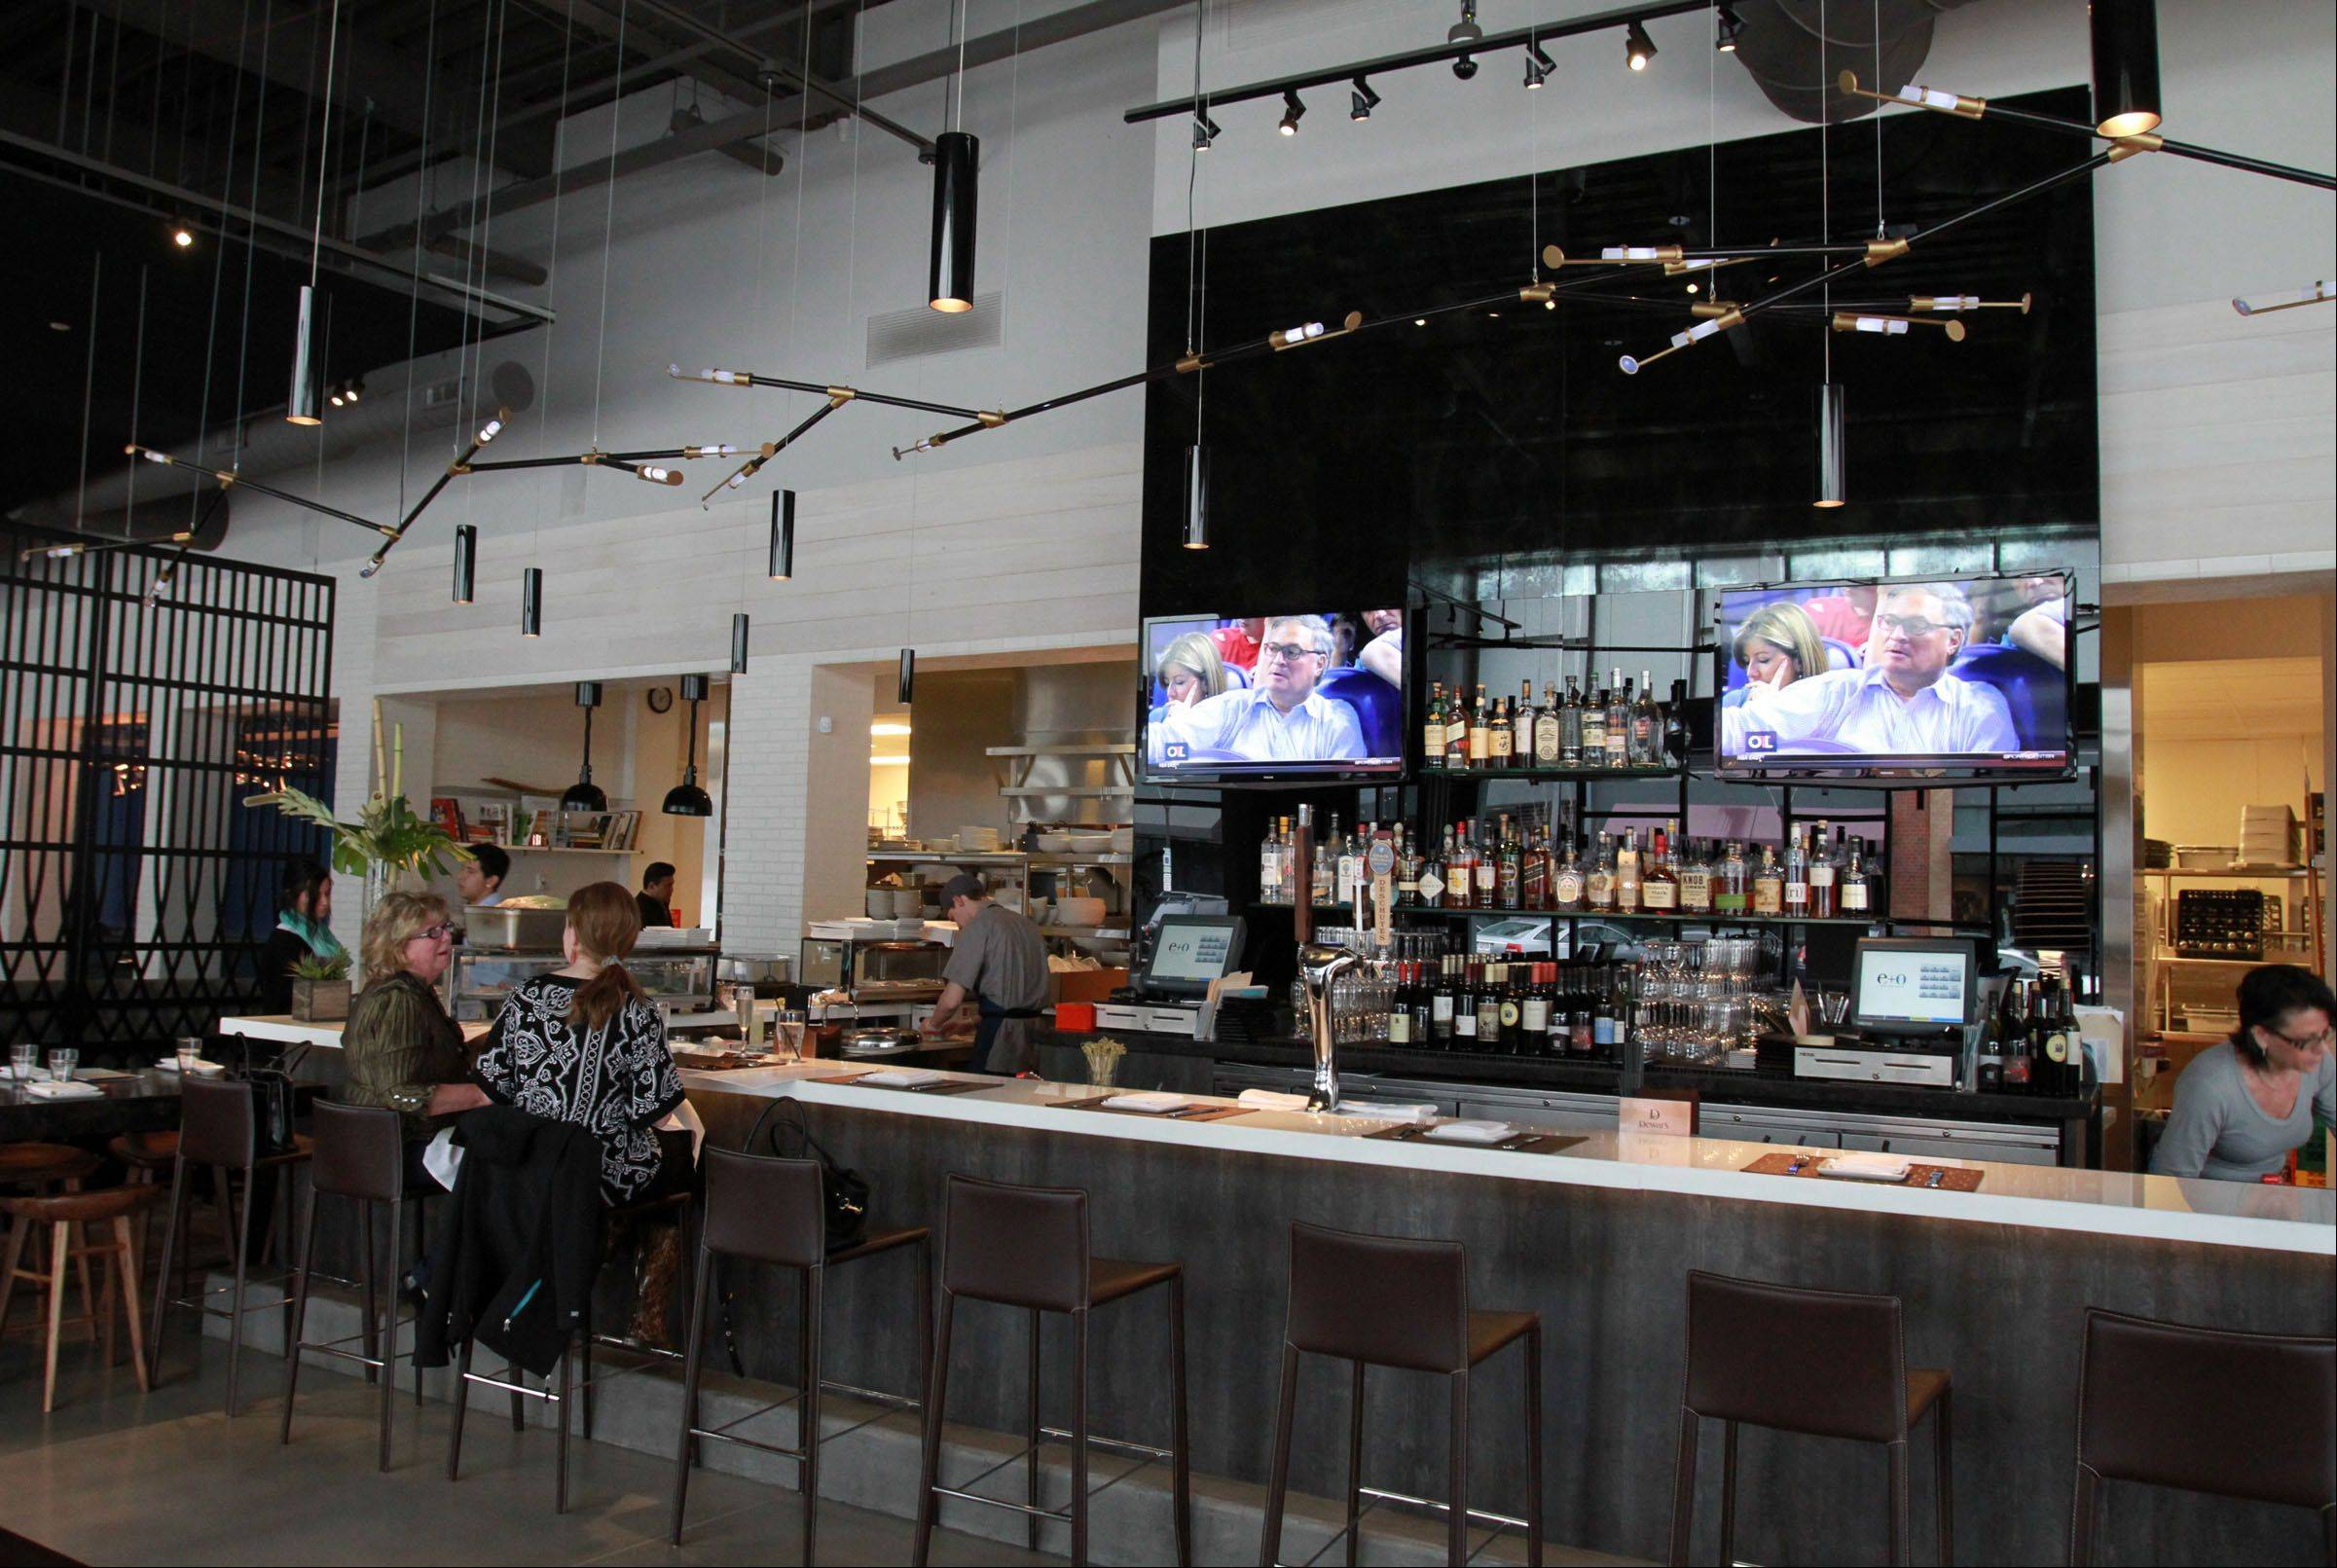 You can grab a cocktail before dinner or a movie in the bar area at e+o Food and Drink in Mount Prospect.